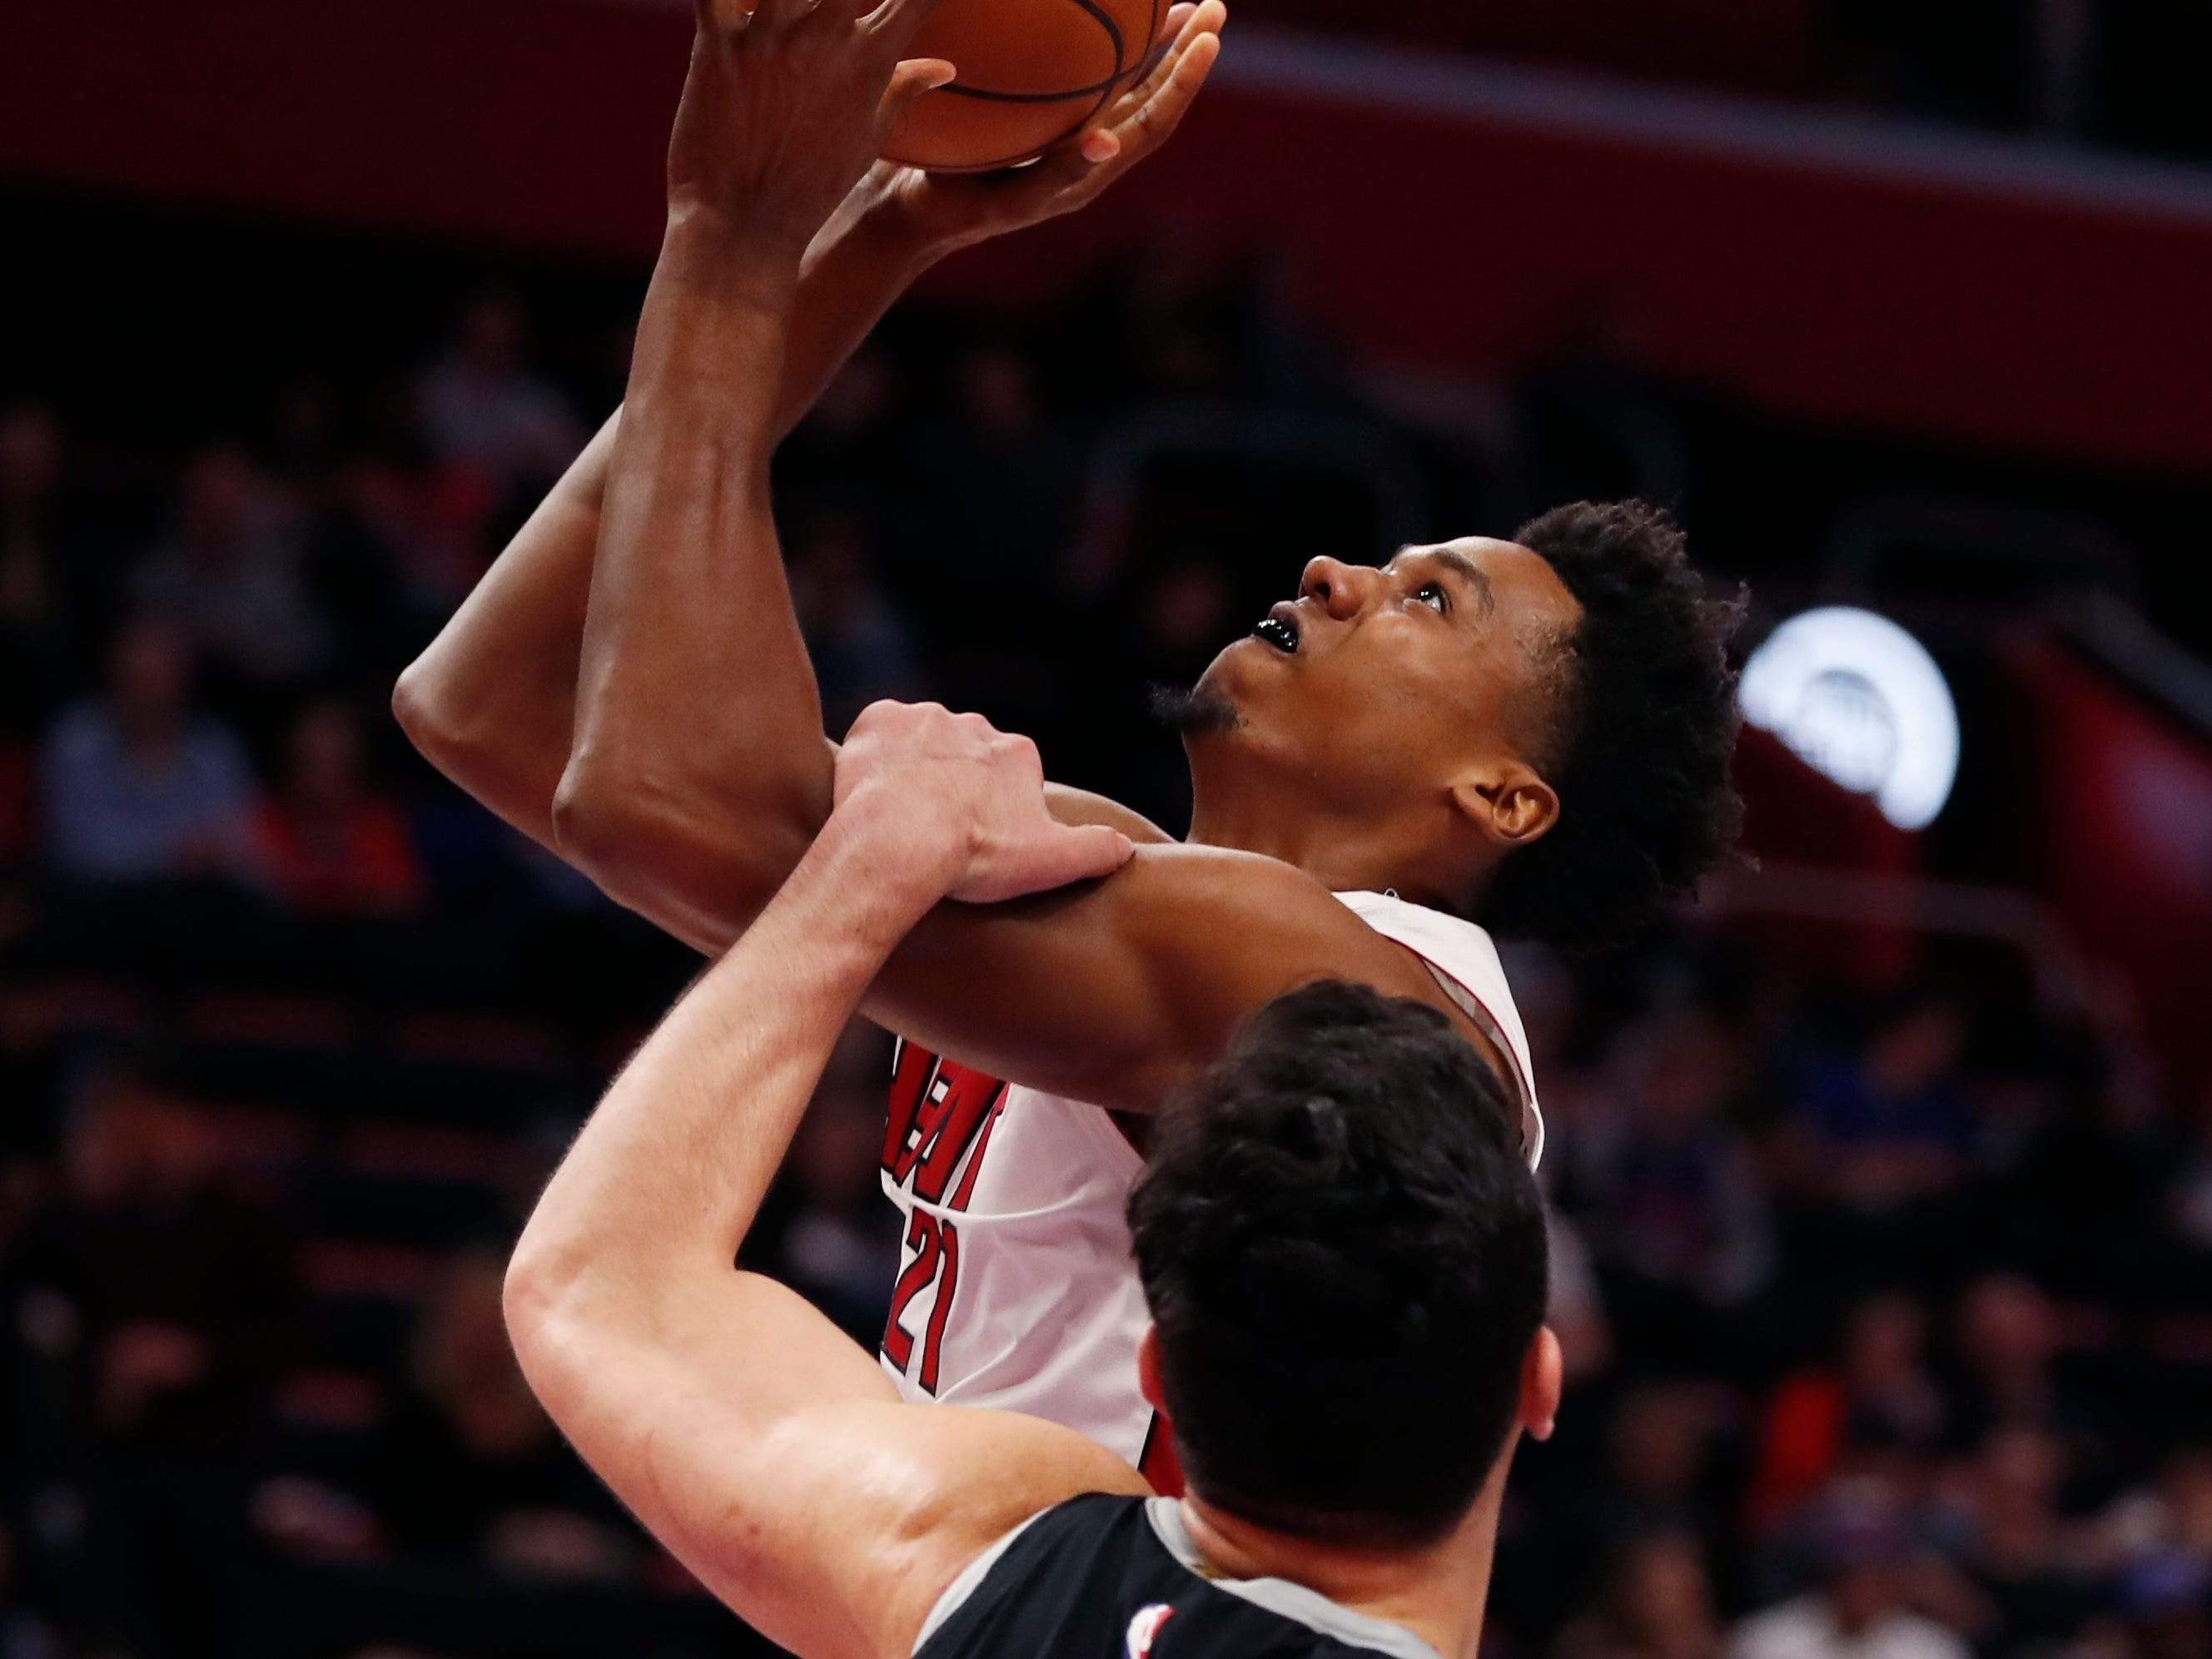 Miami Heat center Hassan Whiteside (21) is fouled by Detroit Pistons center Zaza Pachulia (27) during the second half.